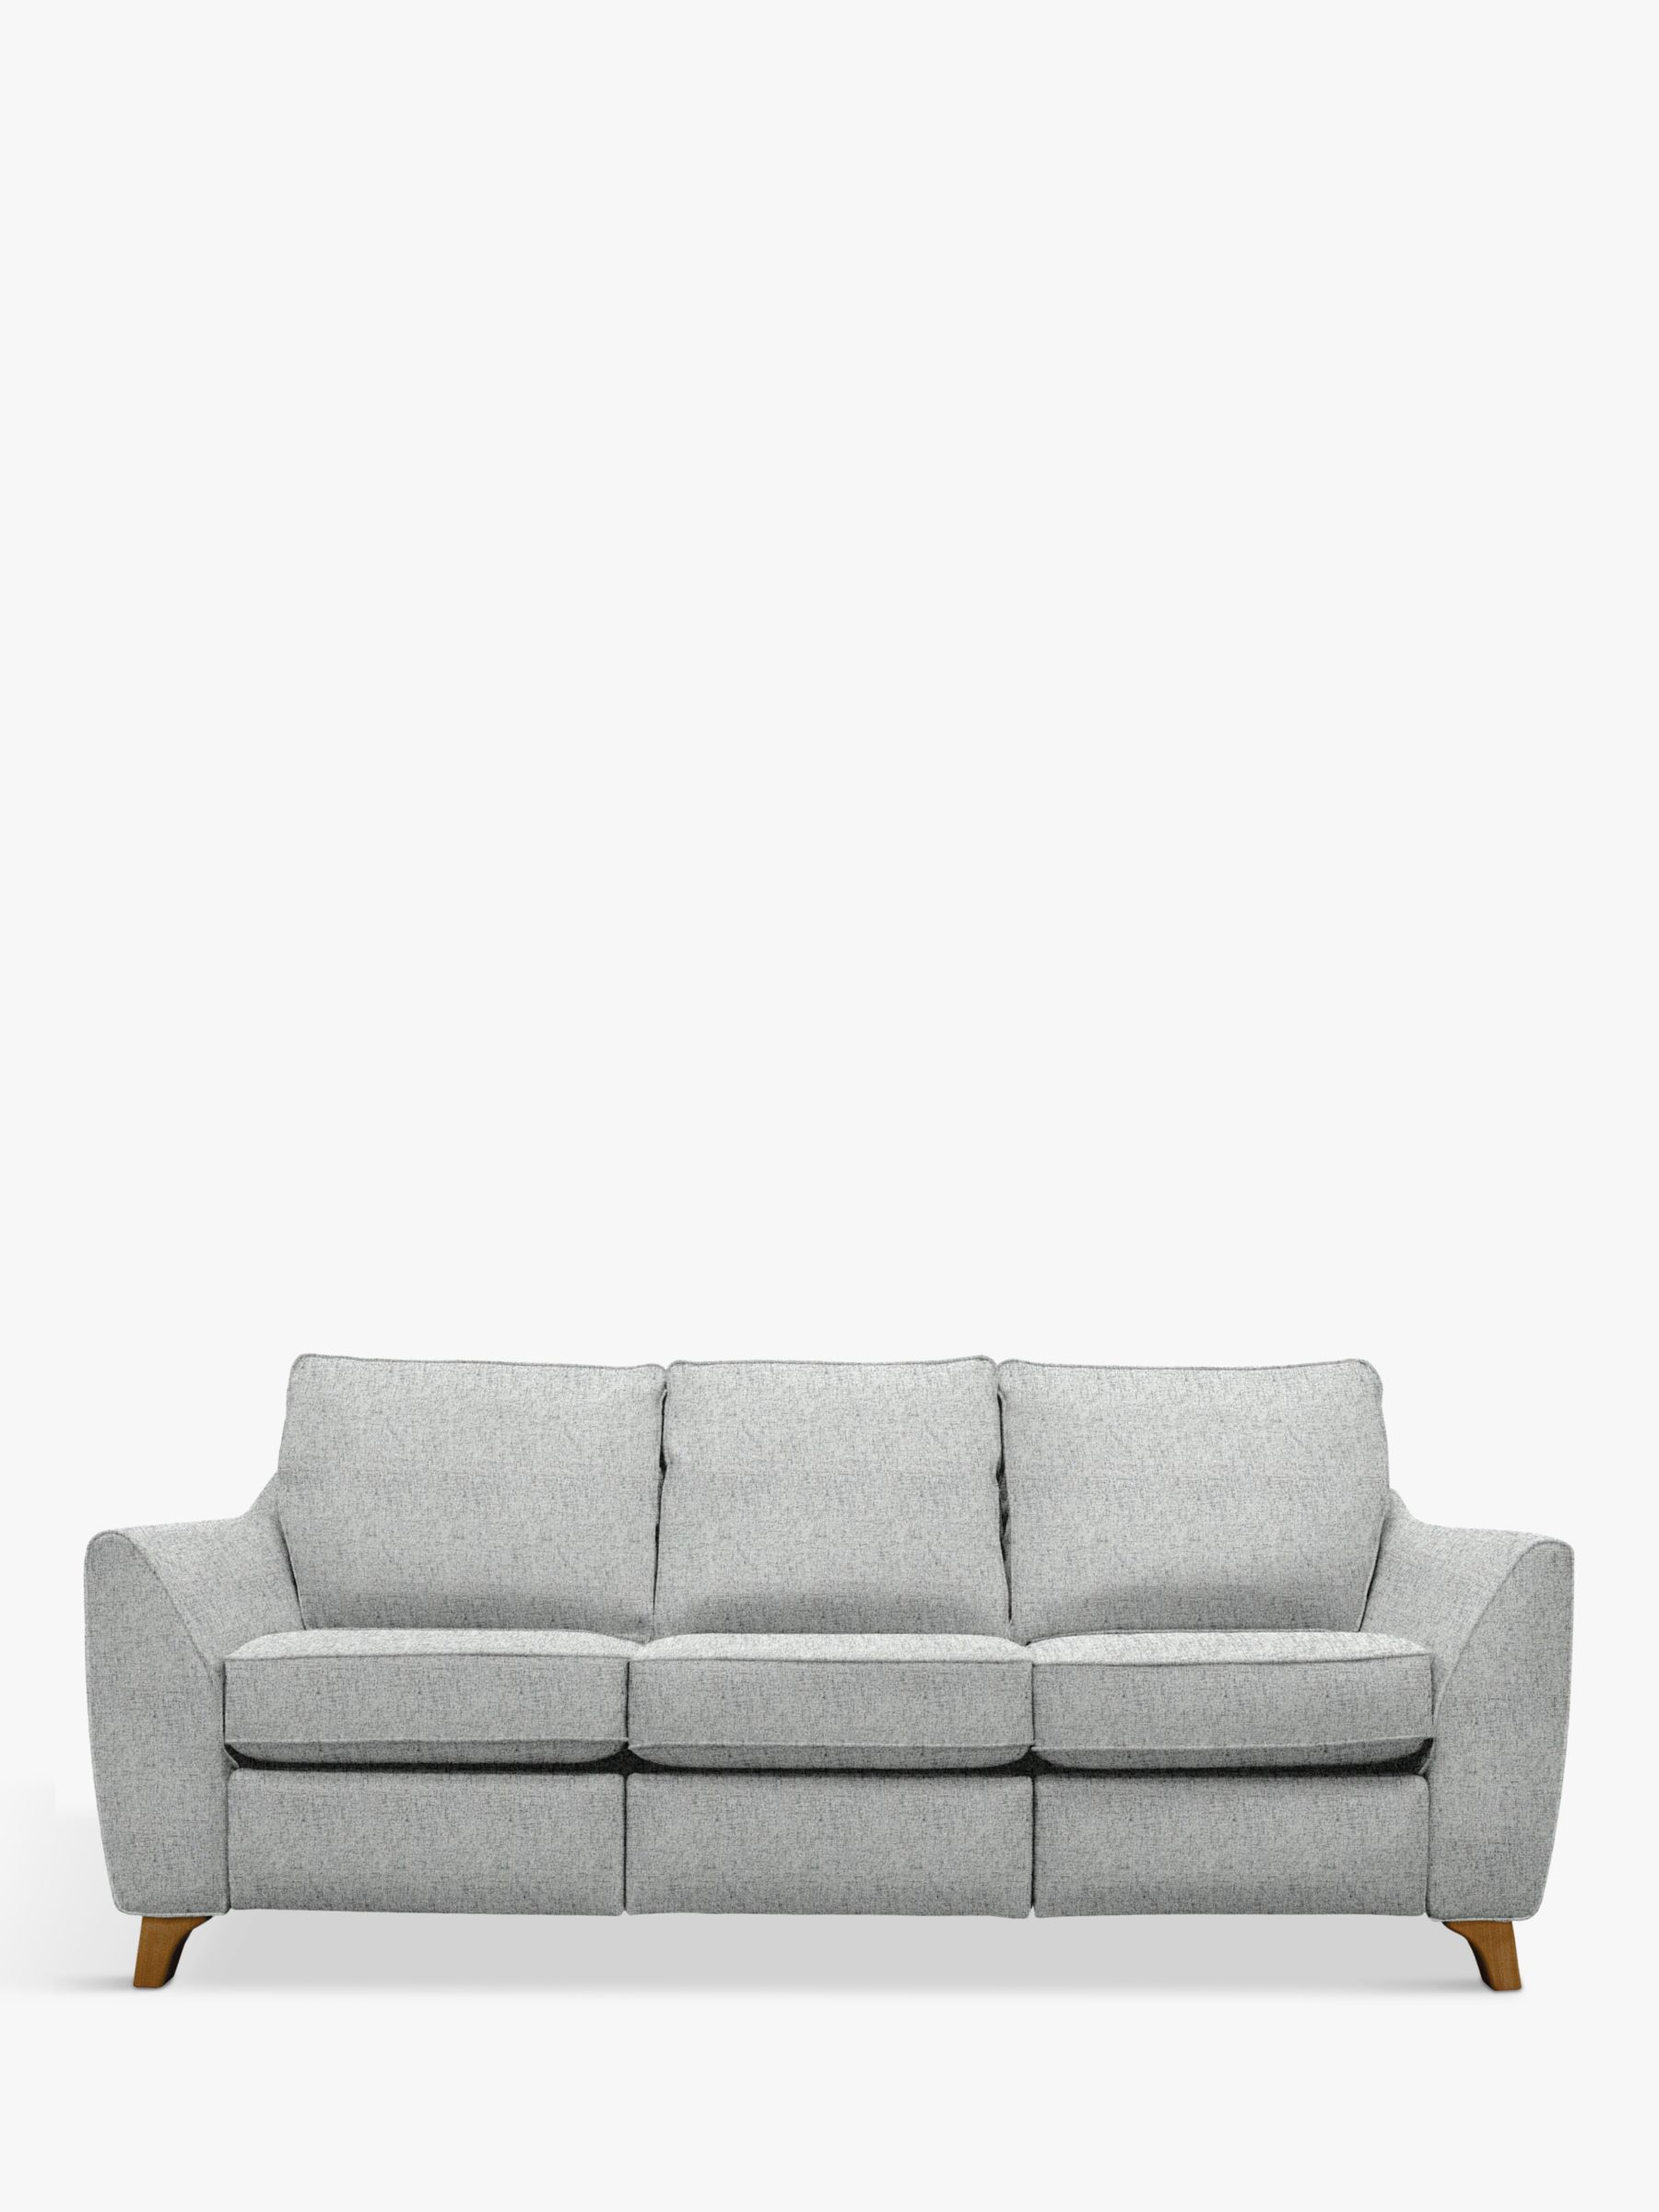 G Plan Vintage G Plan Vintage The Sixty Eight Large 3 Seater Sofa with Footrest Mechanism, Sorren Grey